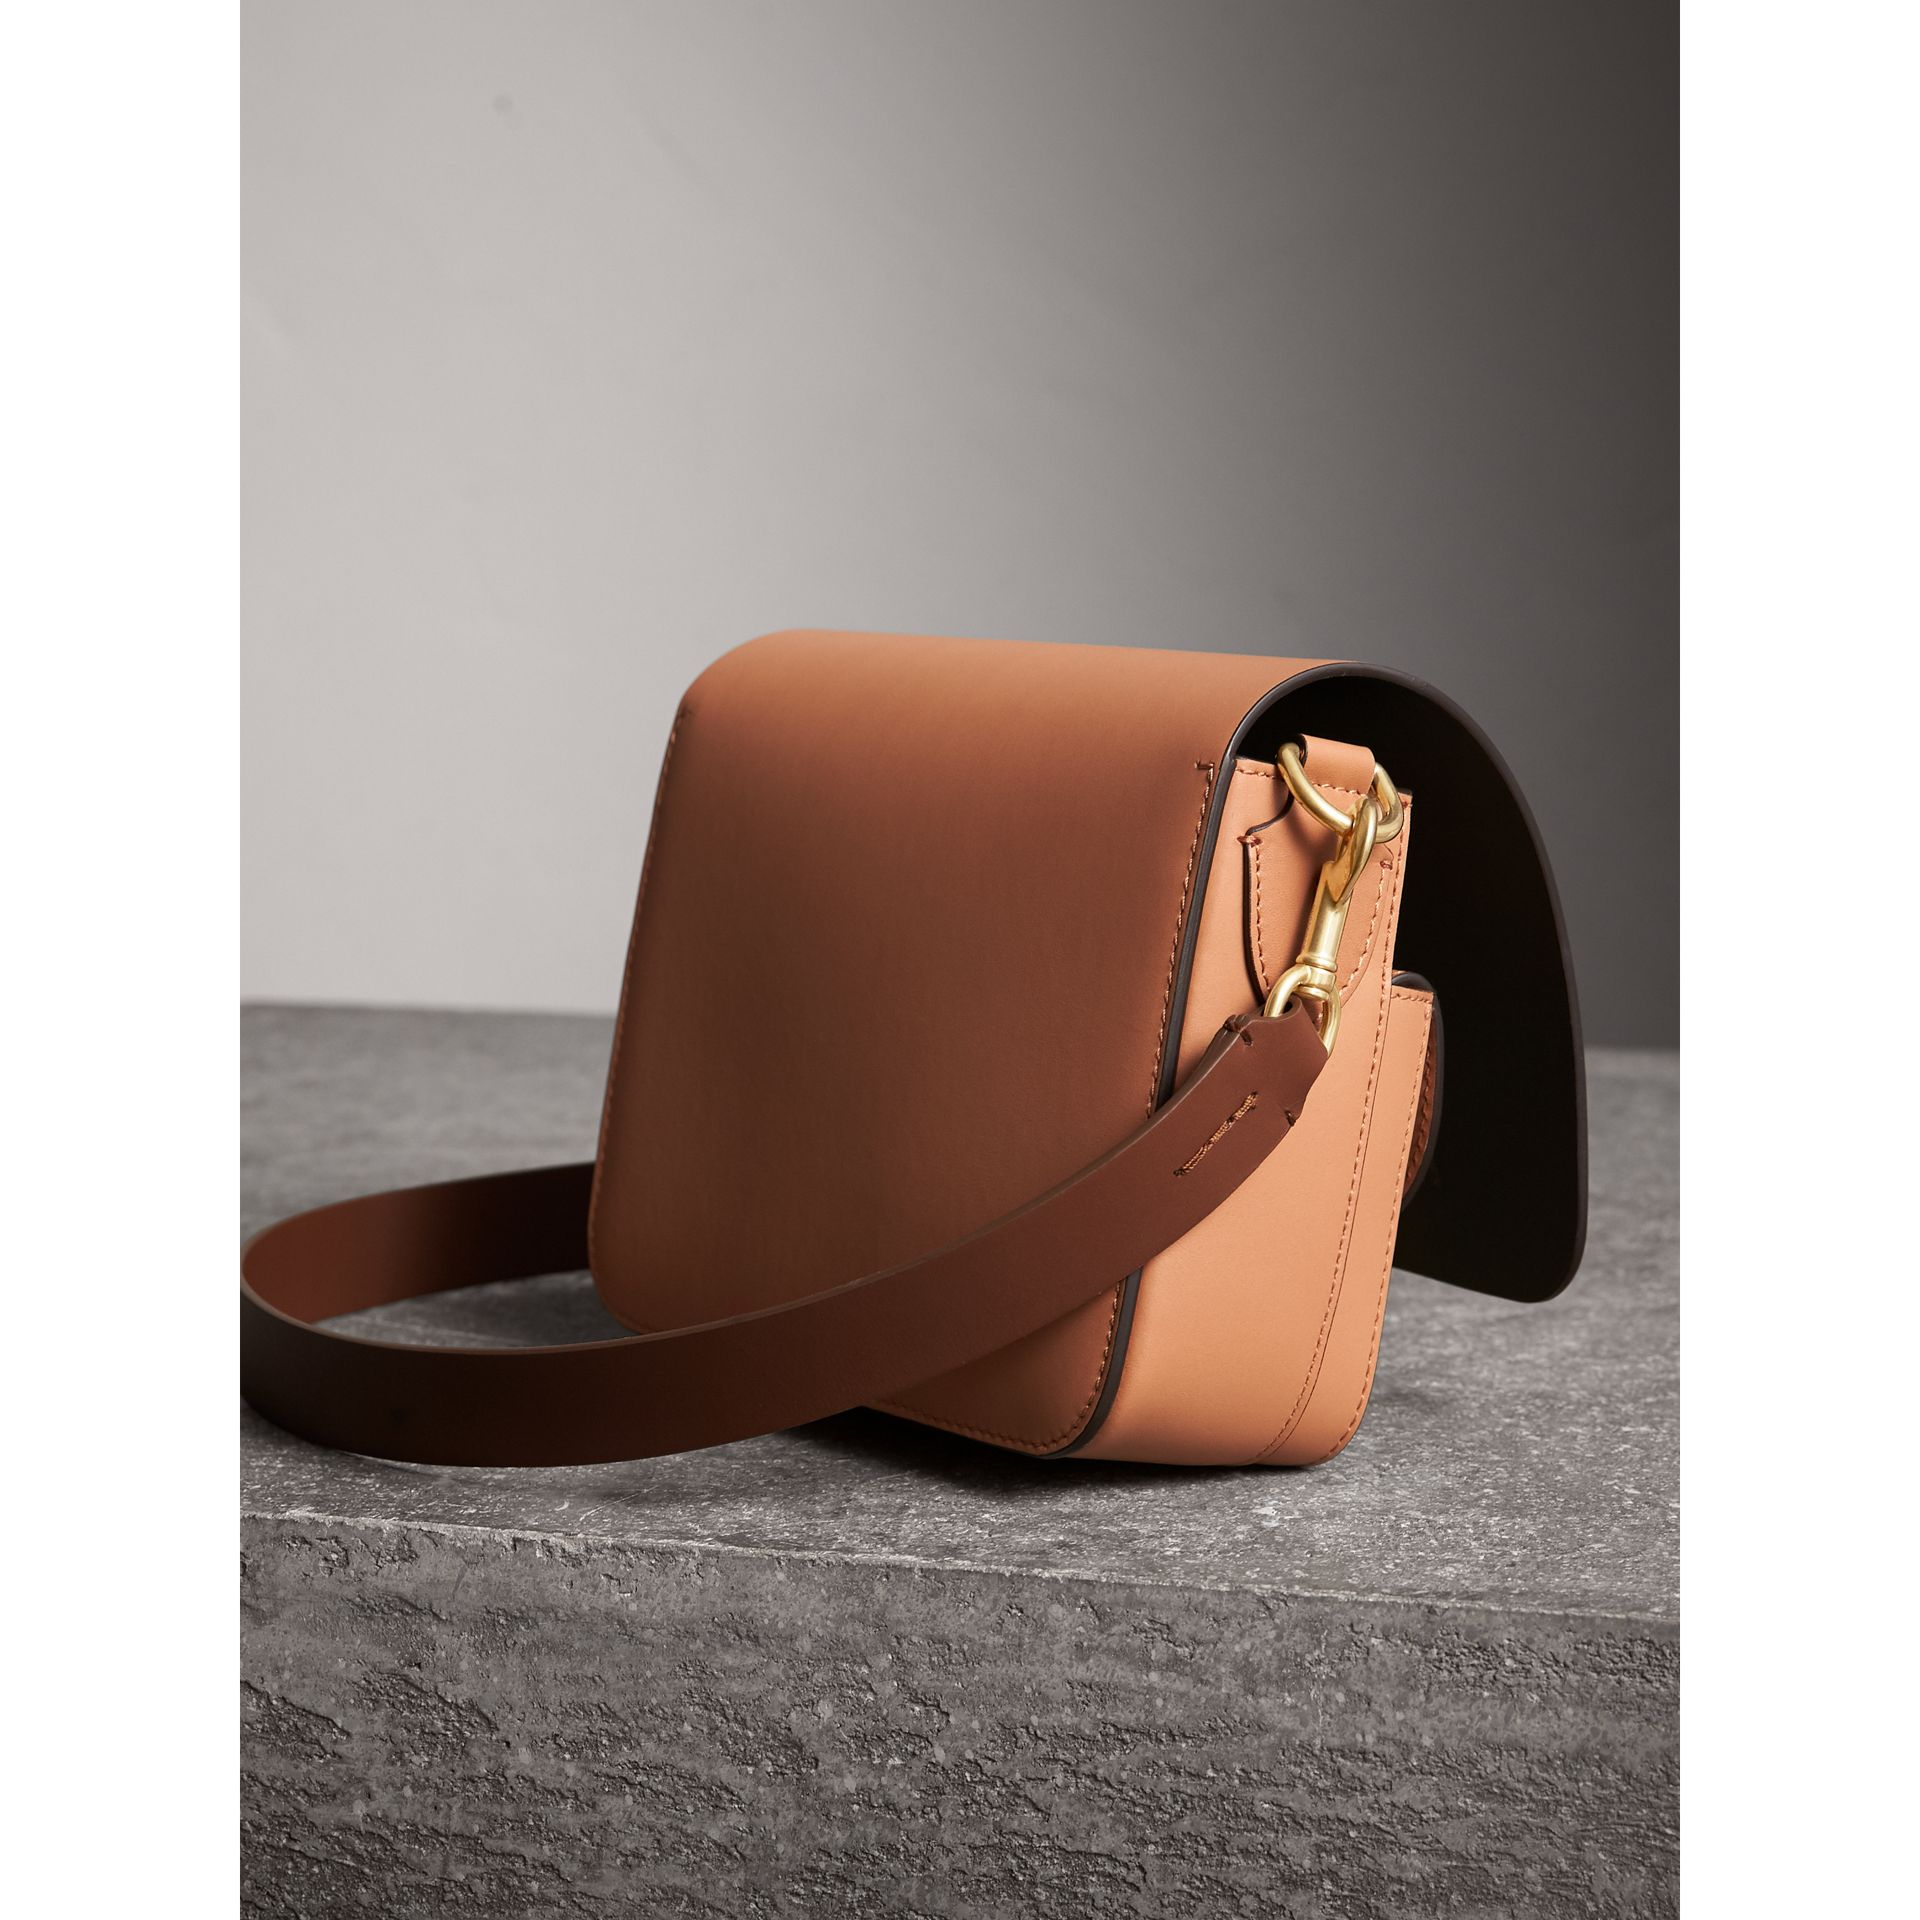 The Square Satchel in Leather in Camel - Women | Burberry Australia - gallery image 4